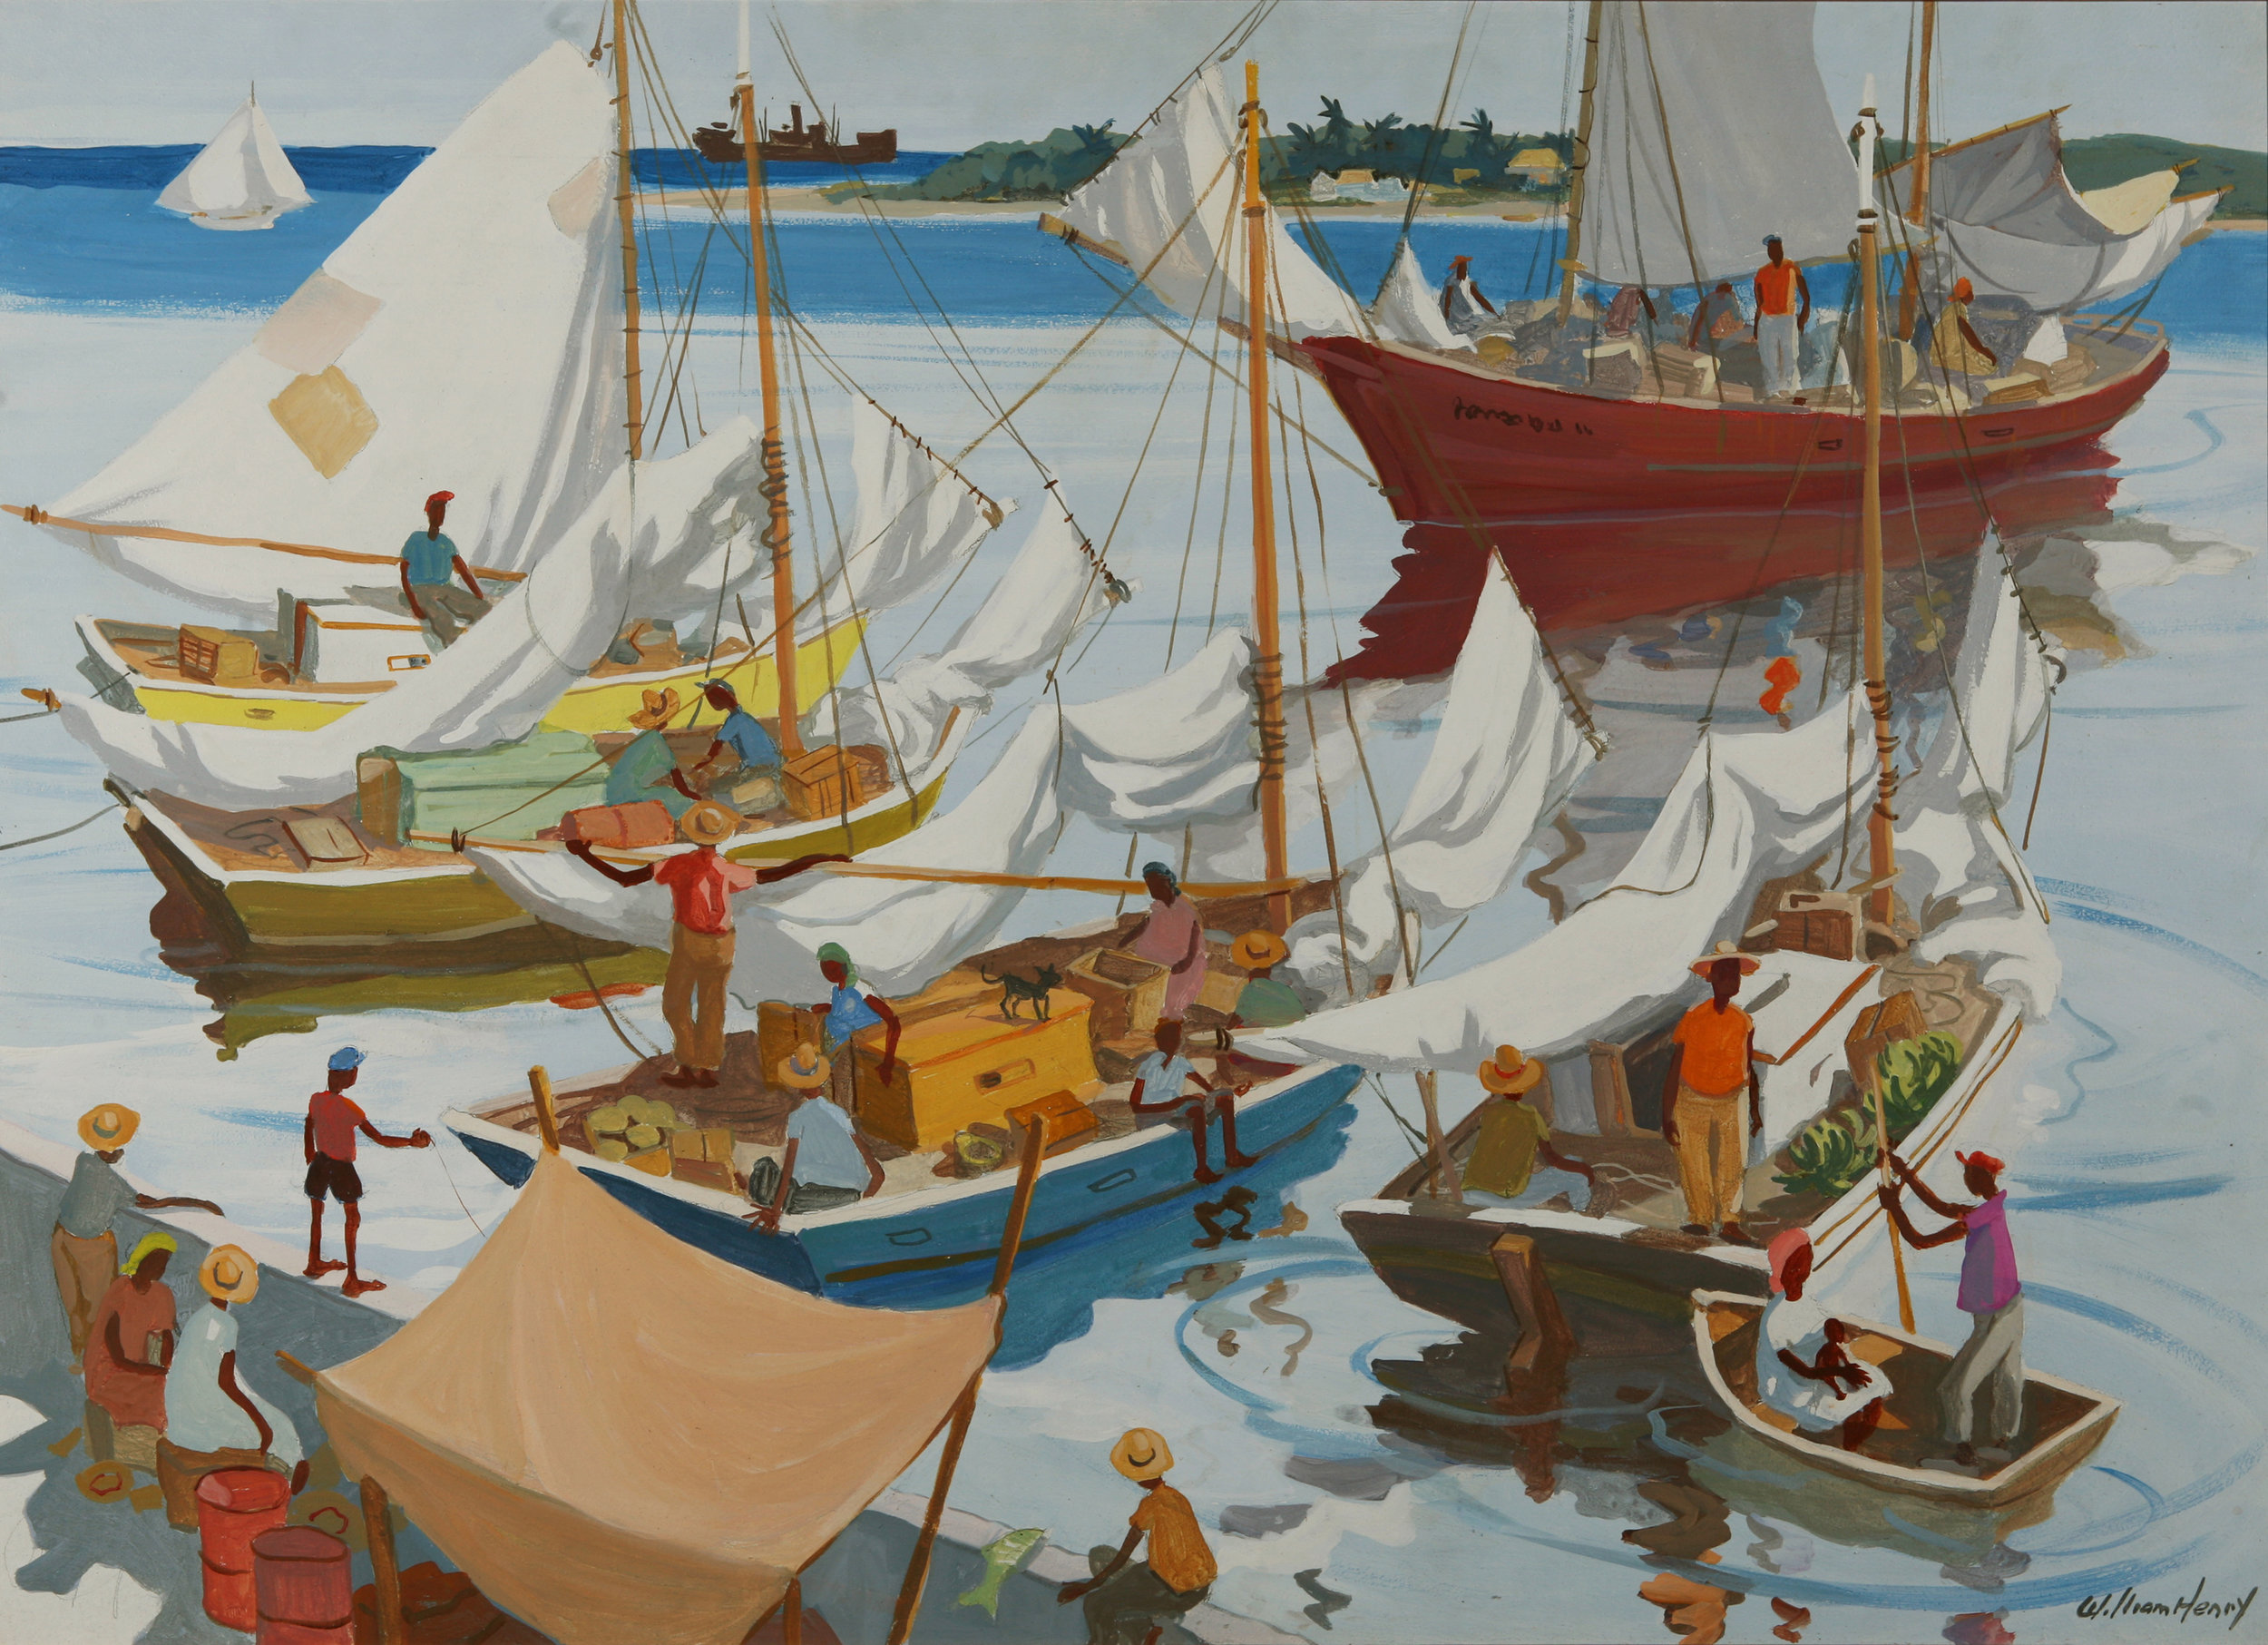 """William Henry. """"Harbour Scene"""", acrylic on masonite, 30 x 34, nd. Image courtesy of the Dawn Davies Collecton."""